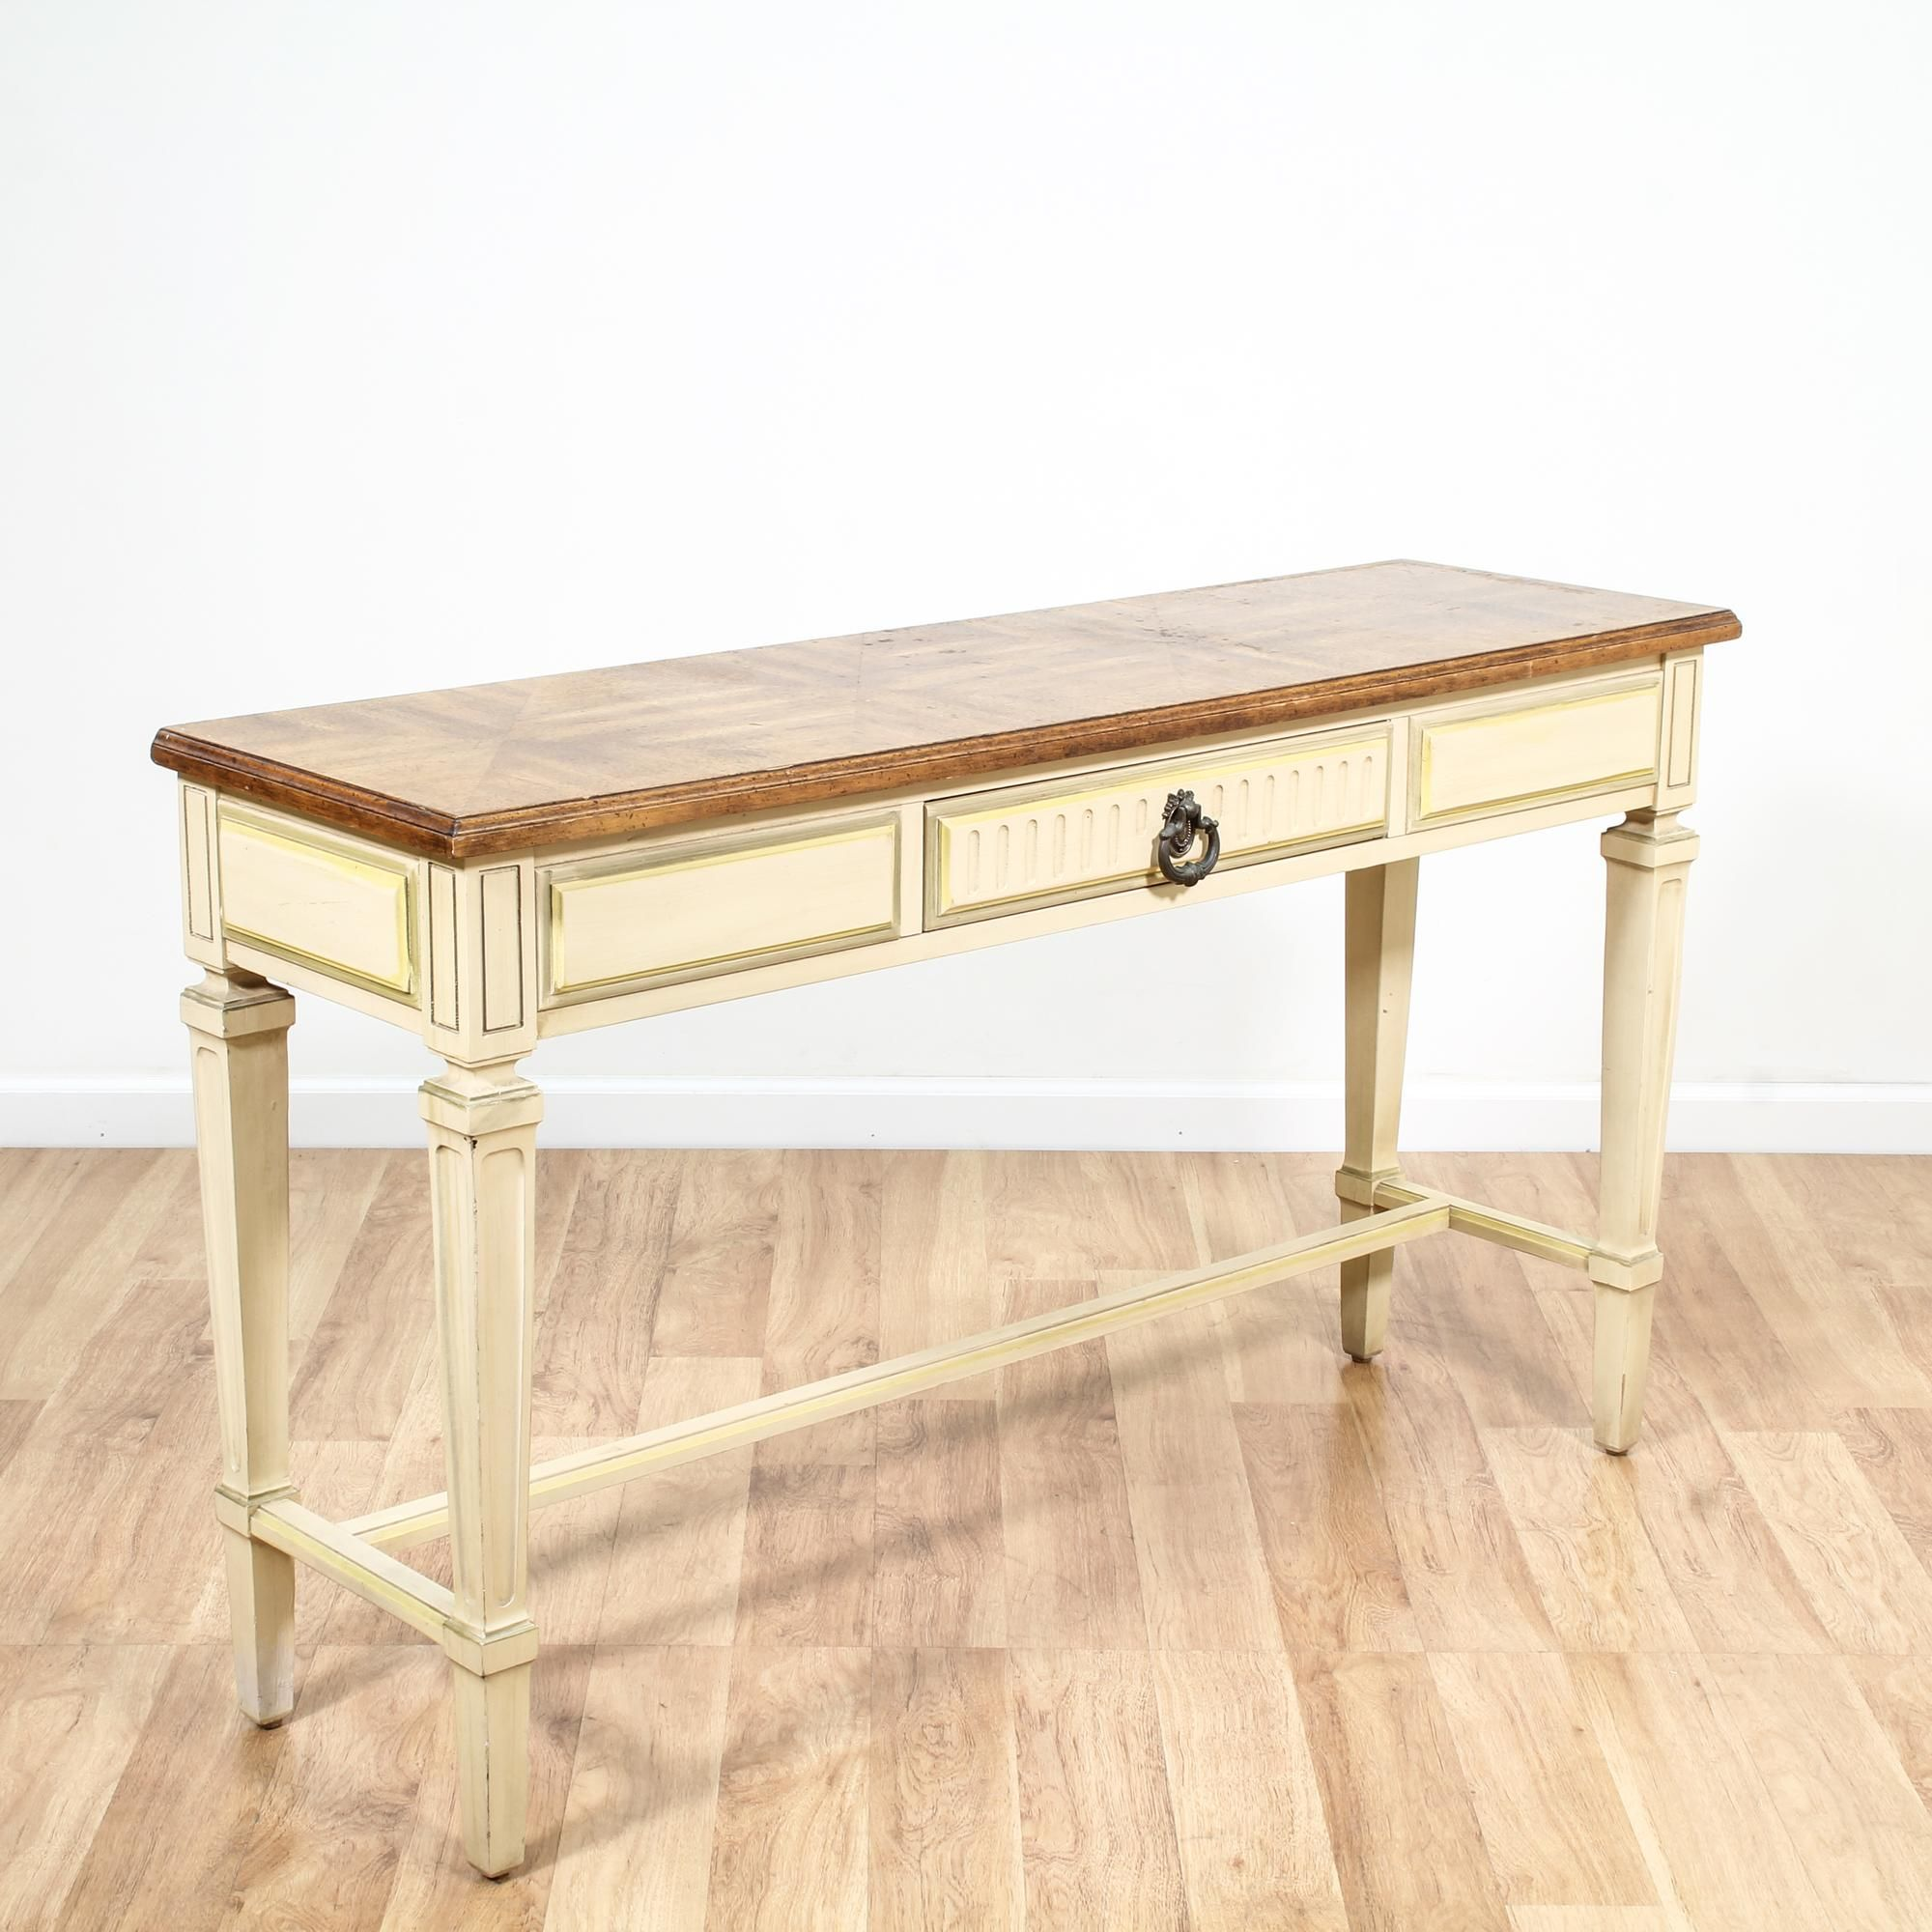 Cream french provincial sofa table console server french cream french provincial sofa table console server geotapseo Images